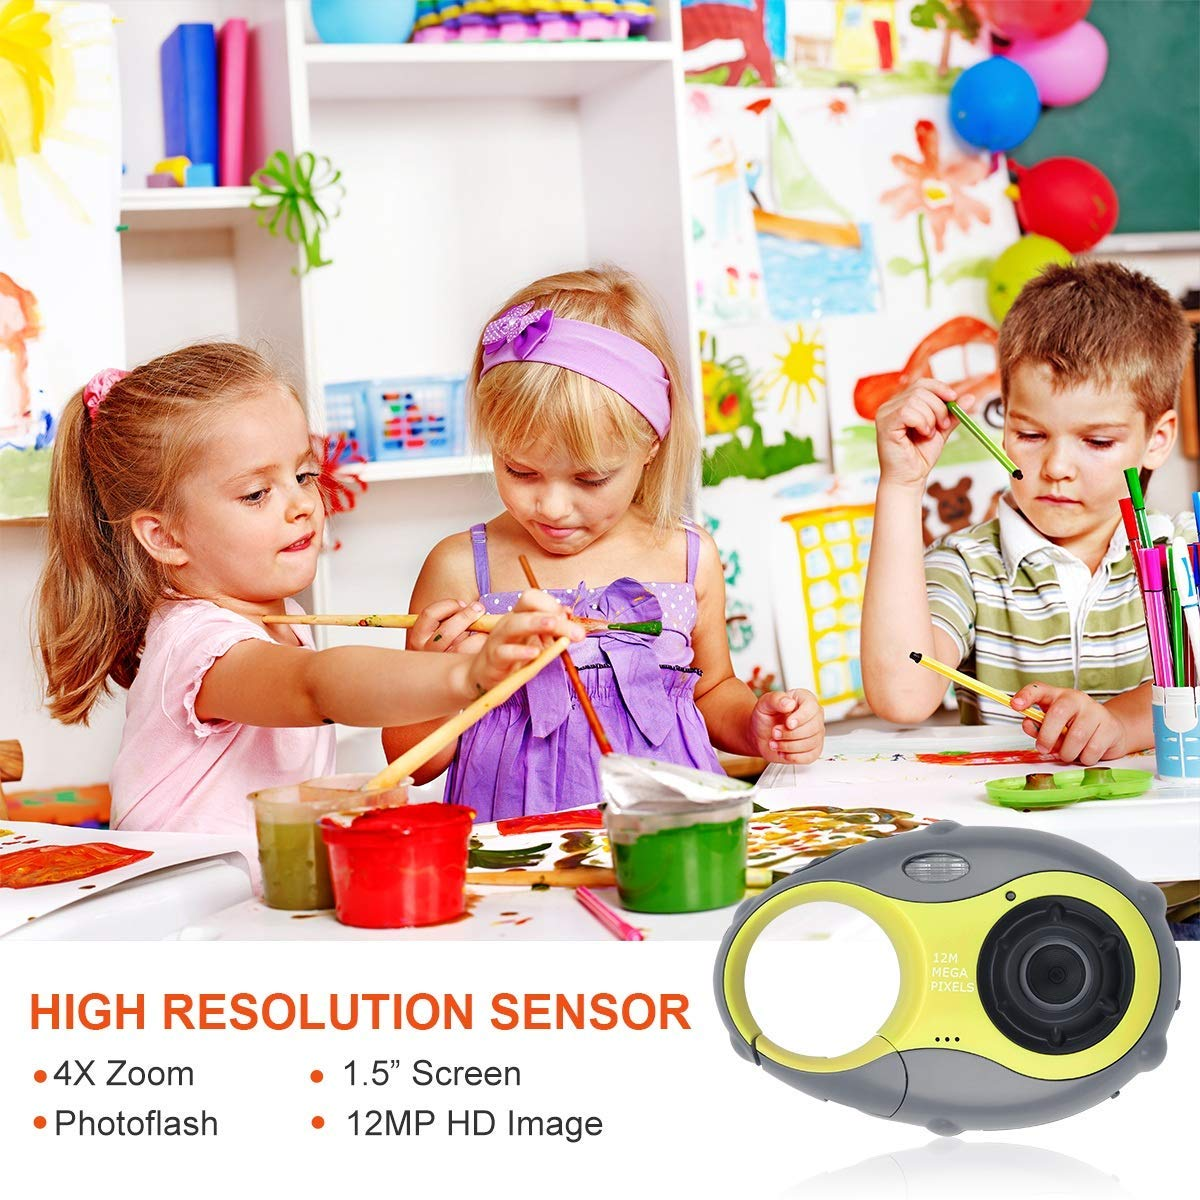 Kids Camera, Digital Camera for Children, 12MP HD Kids Video Camera with 1.5 Inch LCD Screen, 4x Digital Zoom, Flash Light, Rechargeable Battery and 8GB SD Card, Best Holiday Gift for Boys and Girls by LDF (Image #3)